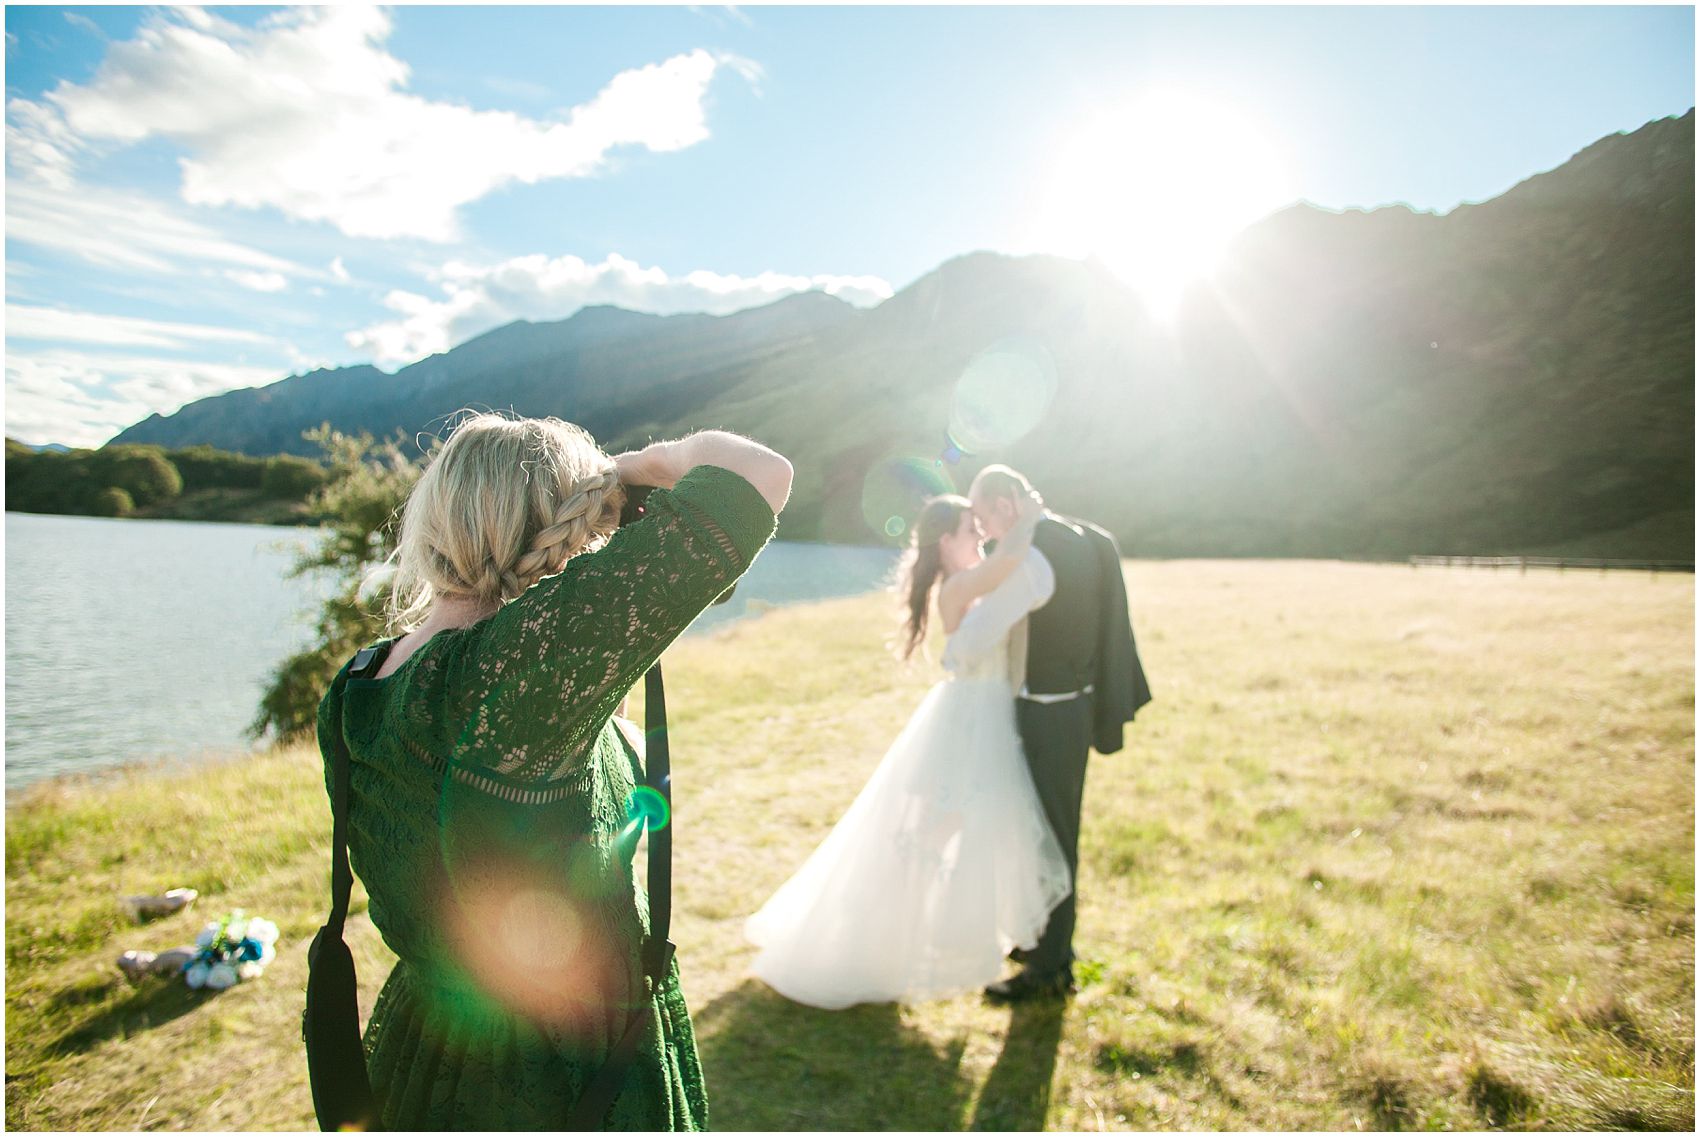 Queenstown New Zealand Wedding Photographer Bruna Fabricio Smetona Photo-0060.jpg